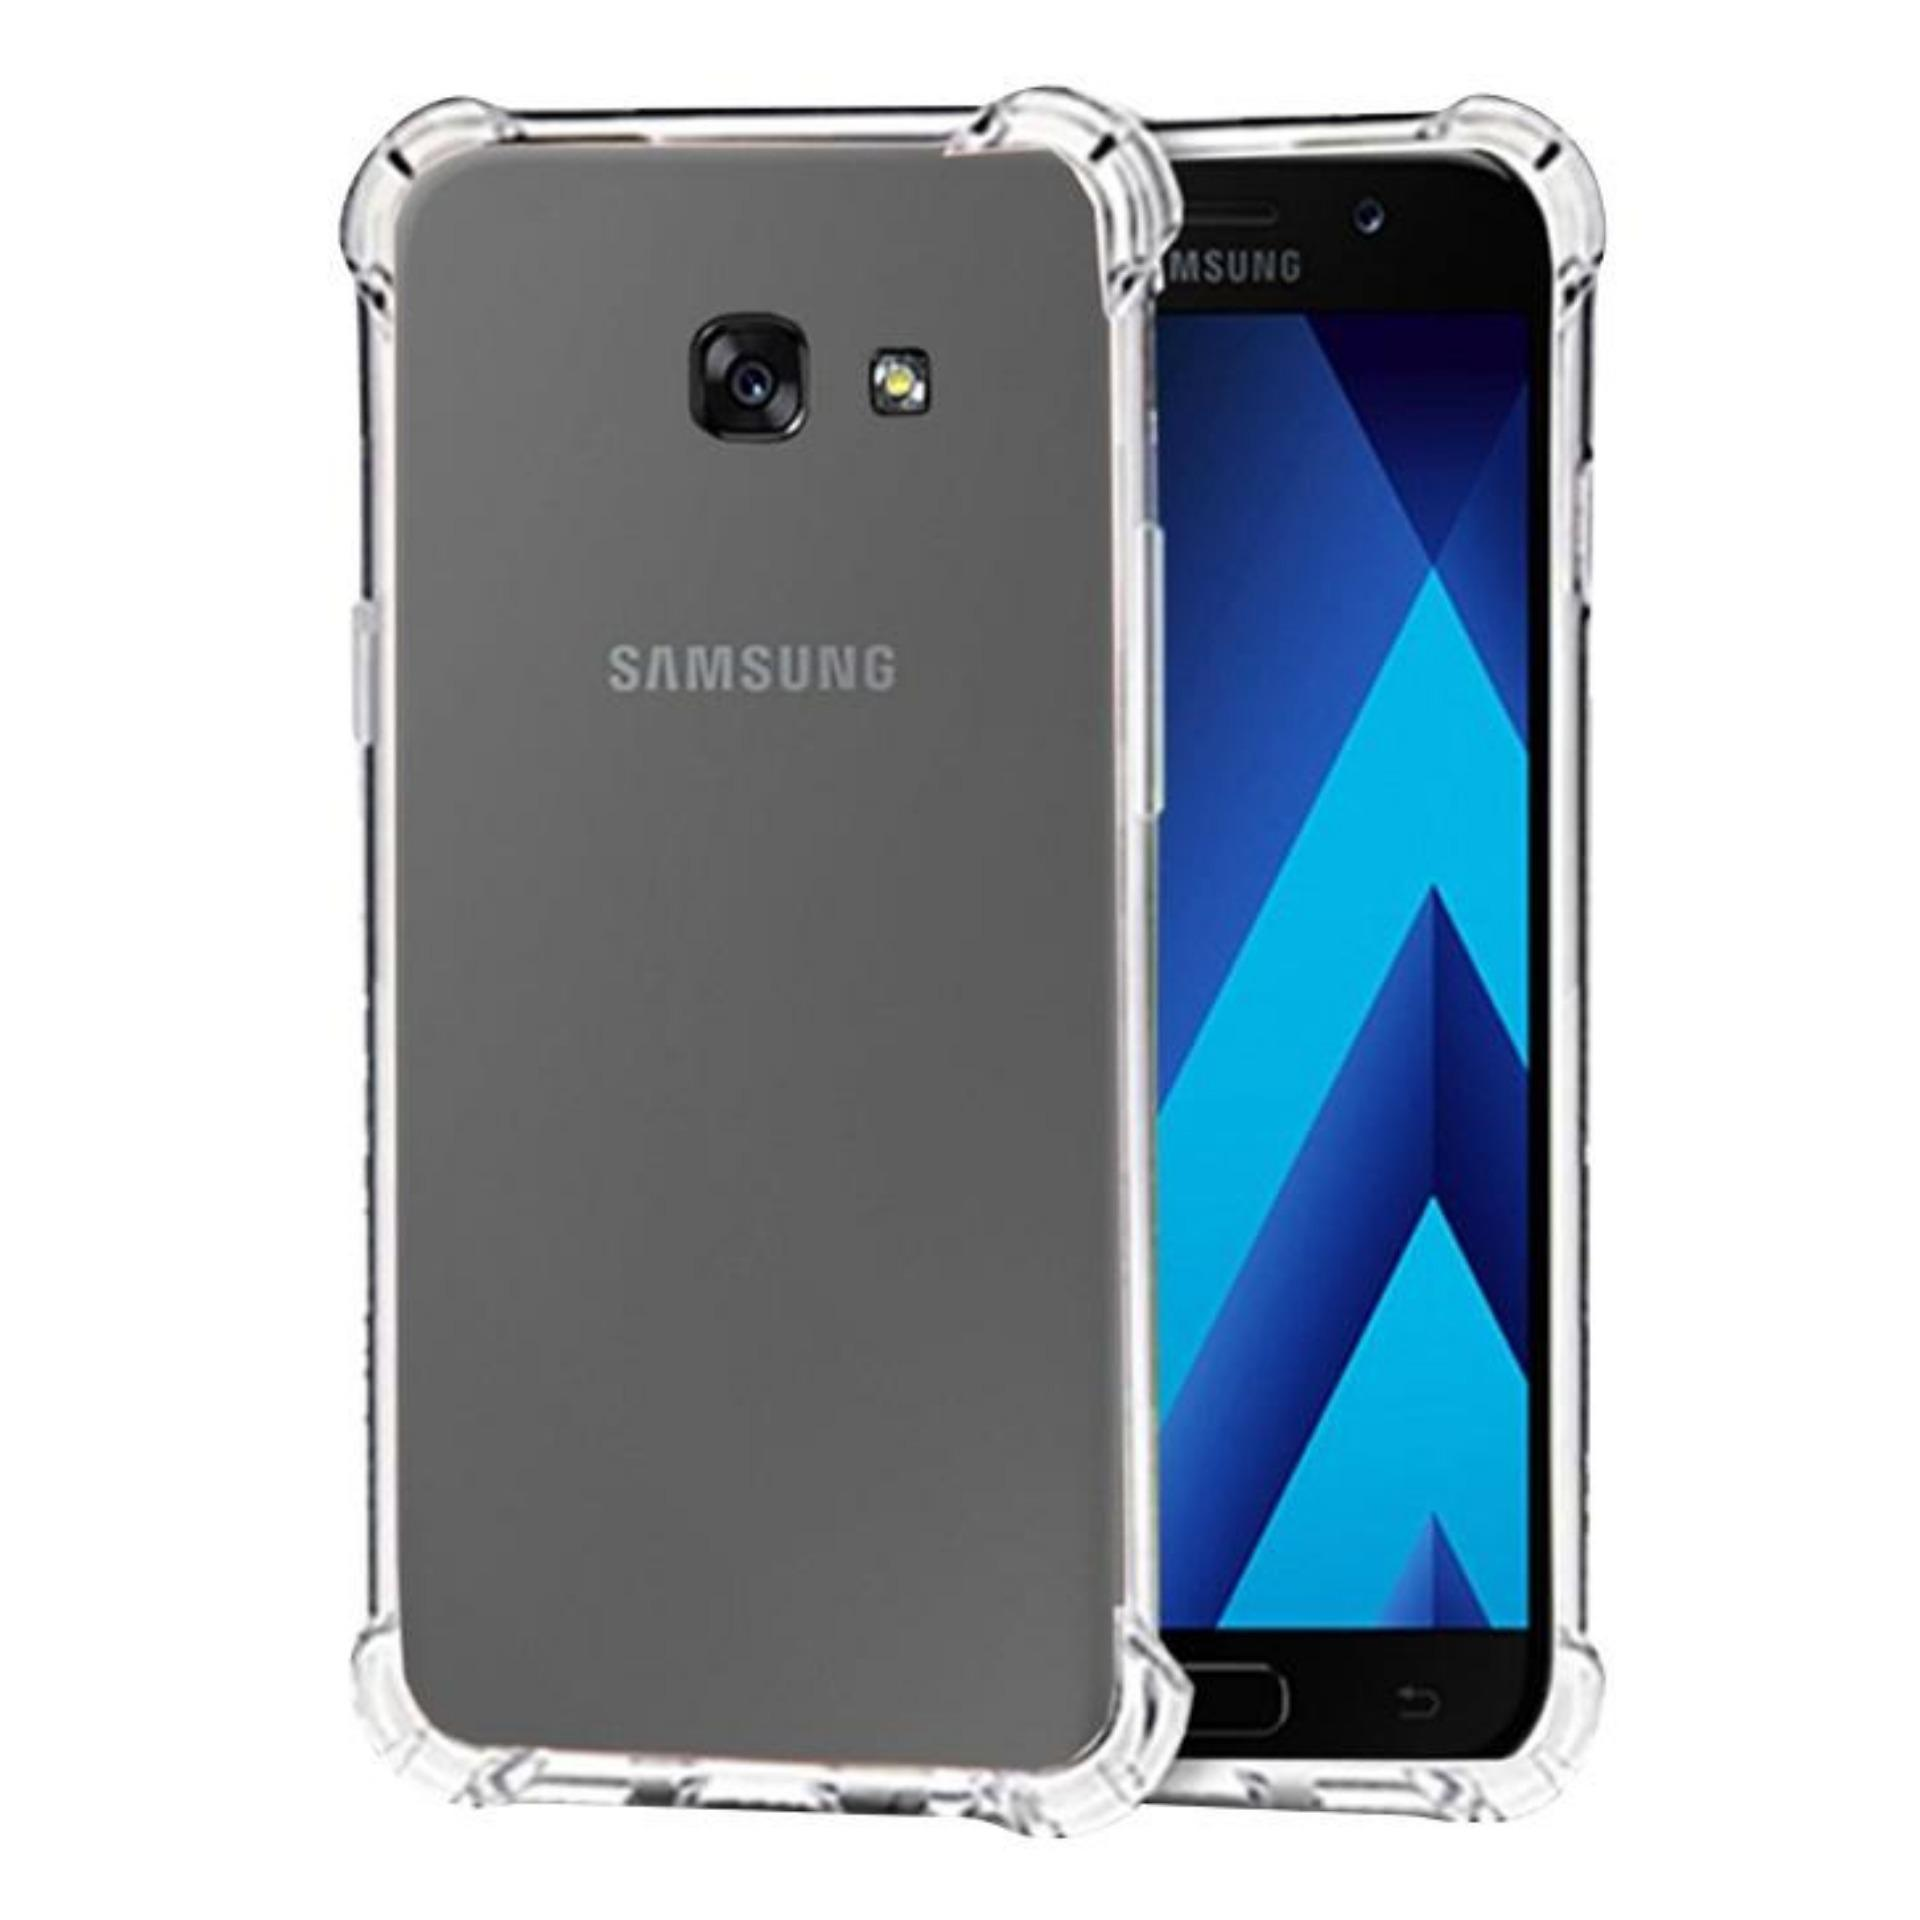 ShockCase for Samsung Galaxy A7 (2017) / A720 / 4G LTE / Duos  Premium Softcase Jelly Anti Crack Sh